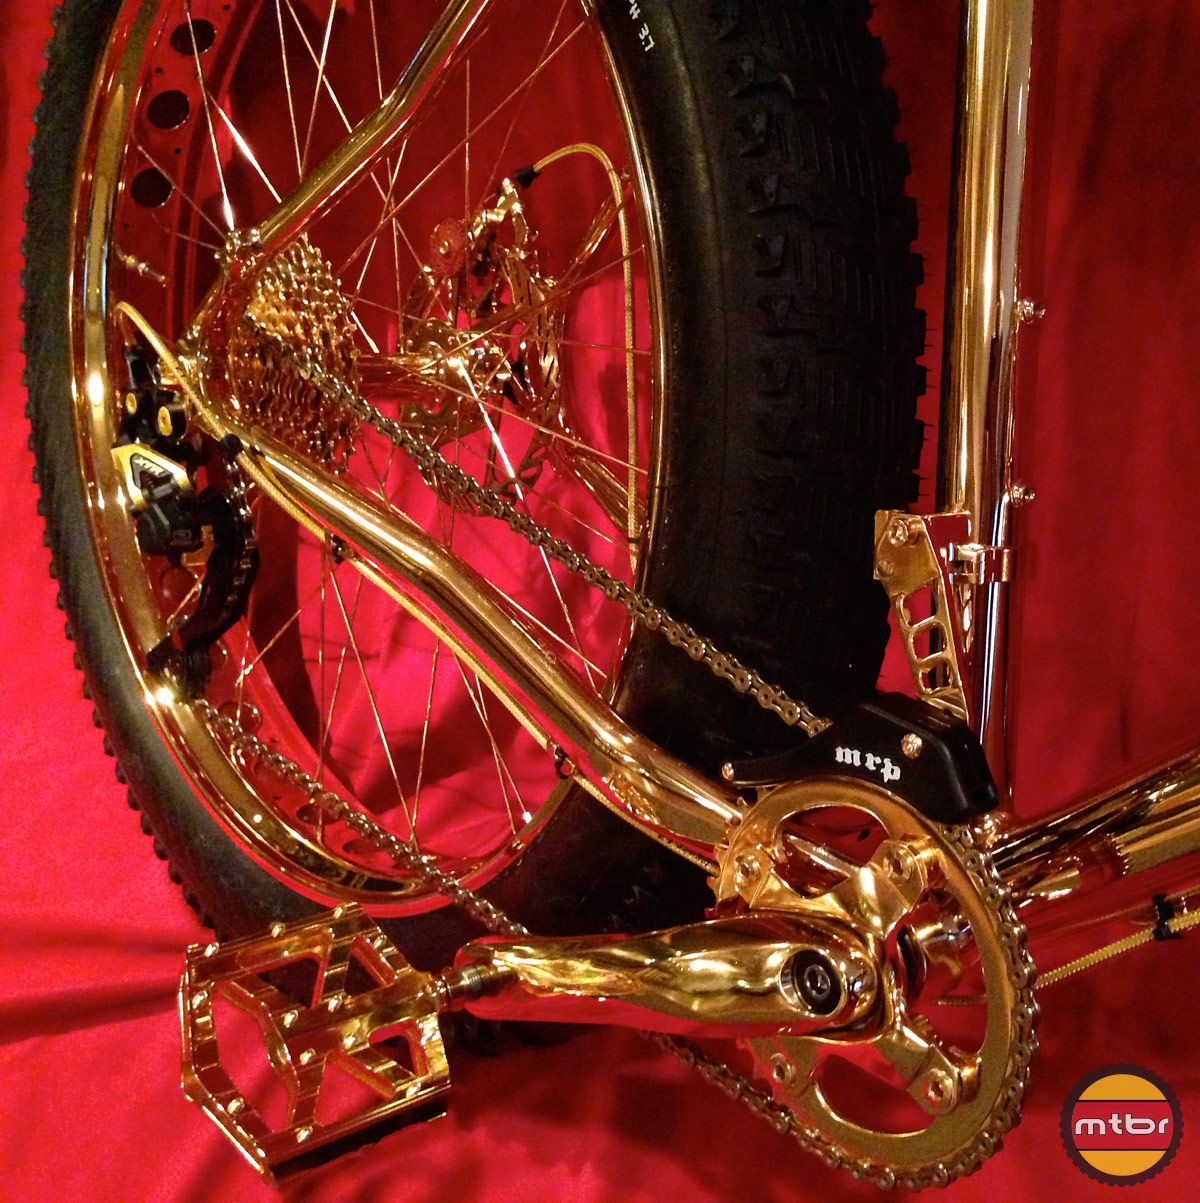 24k Gold Bike Drivetrain